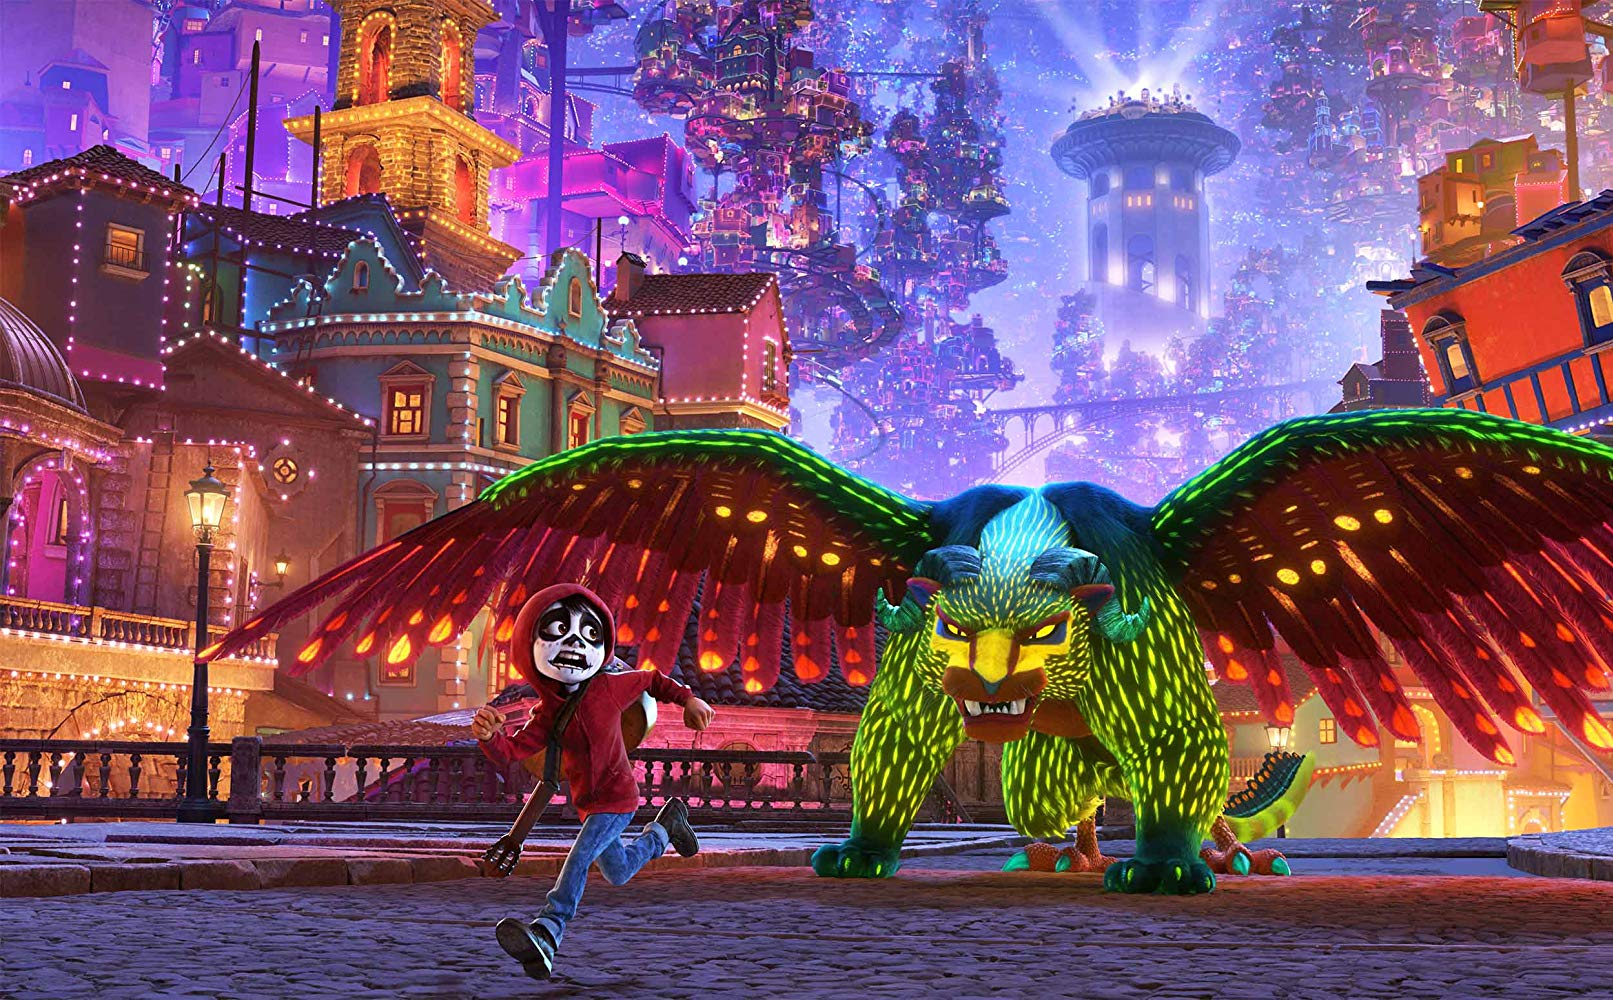 Miguel pursued through the afterlife by an alebrije in Coco (2017)